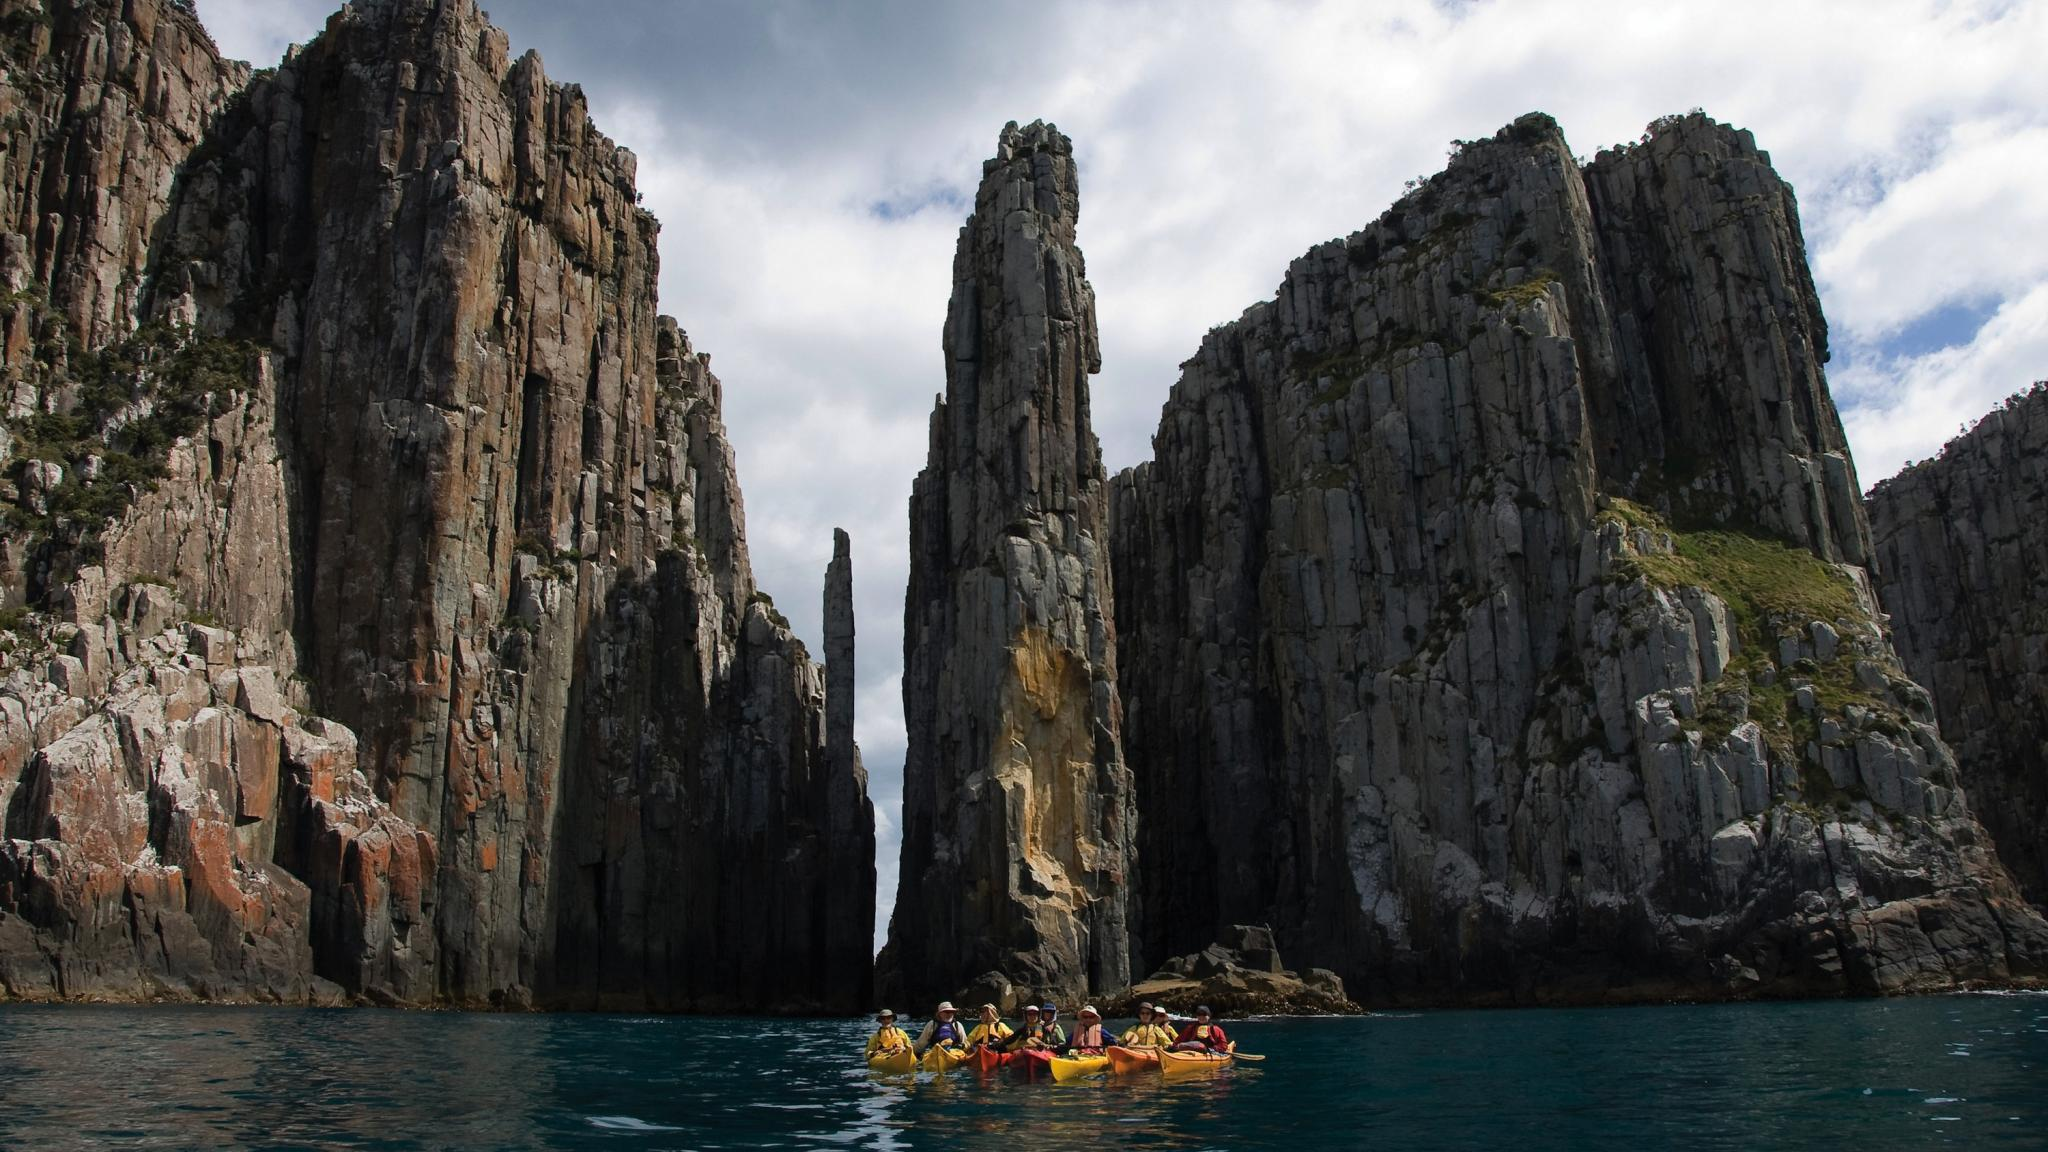 15 Best Tasmanian Landmarks - Kayaking at Fortescue Bay, Tasman Peninsula